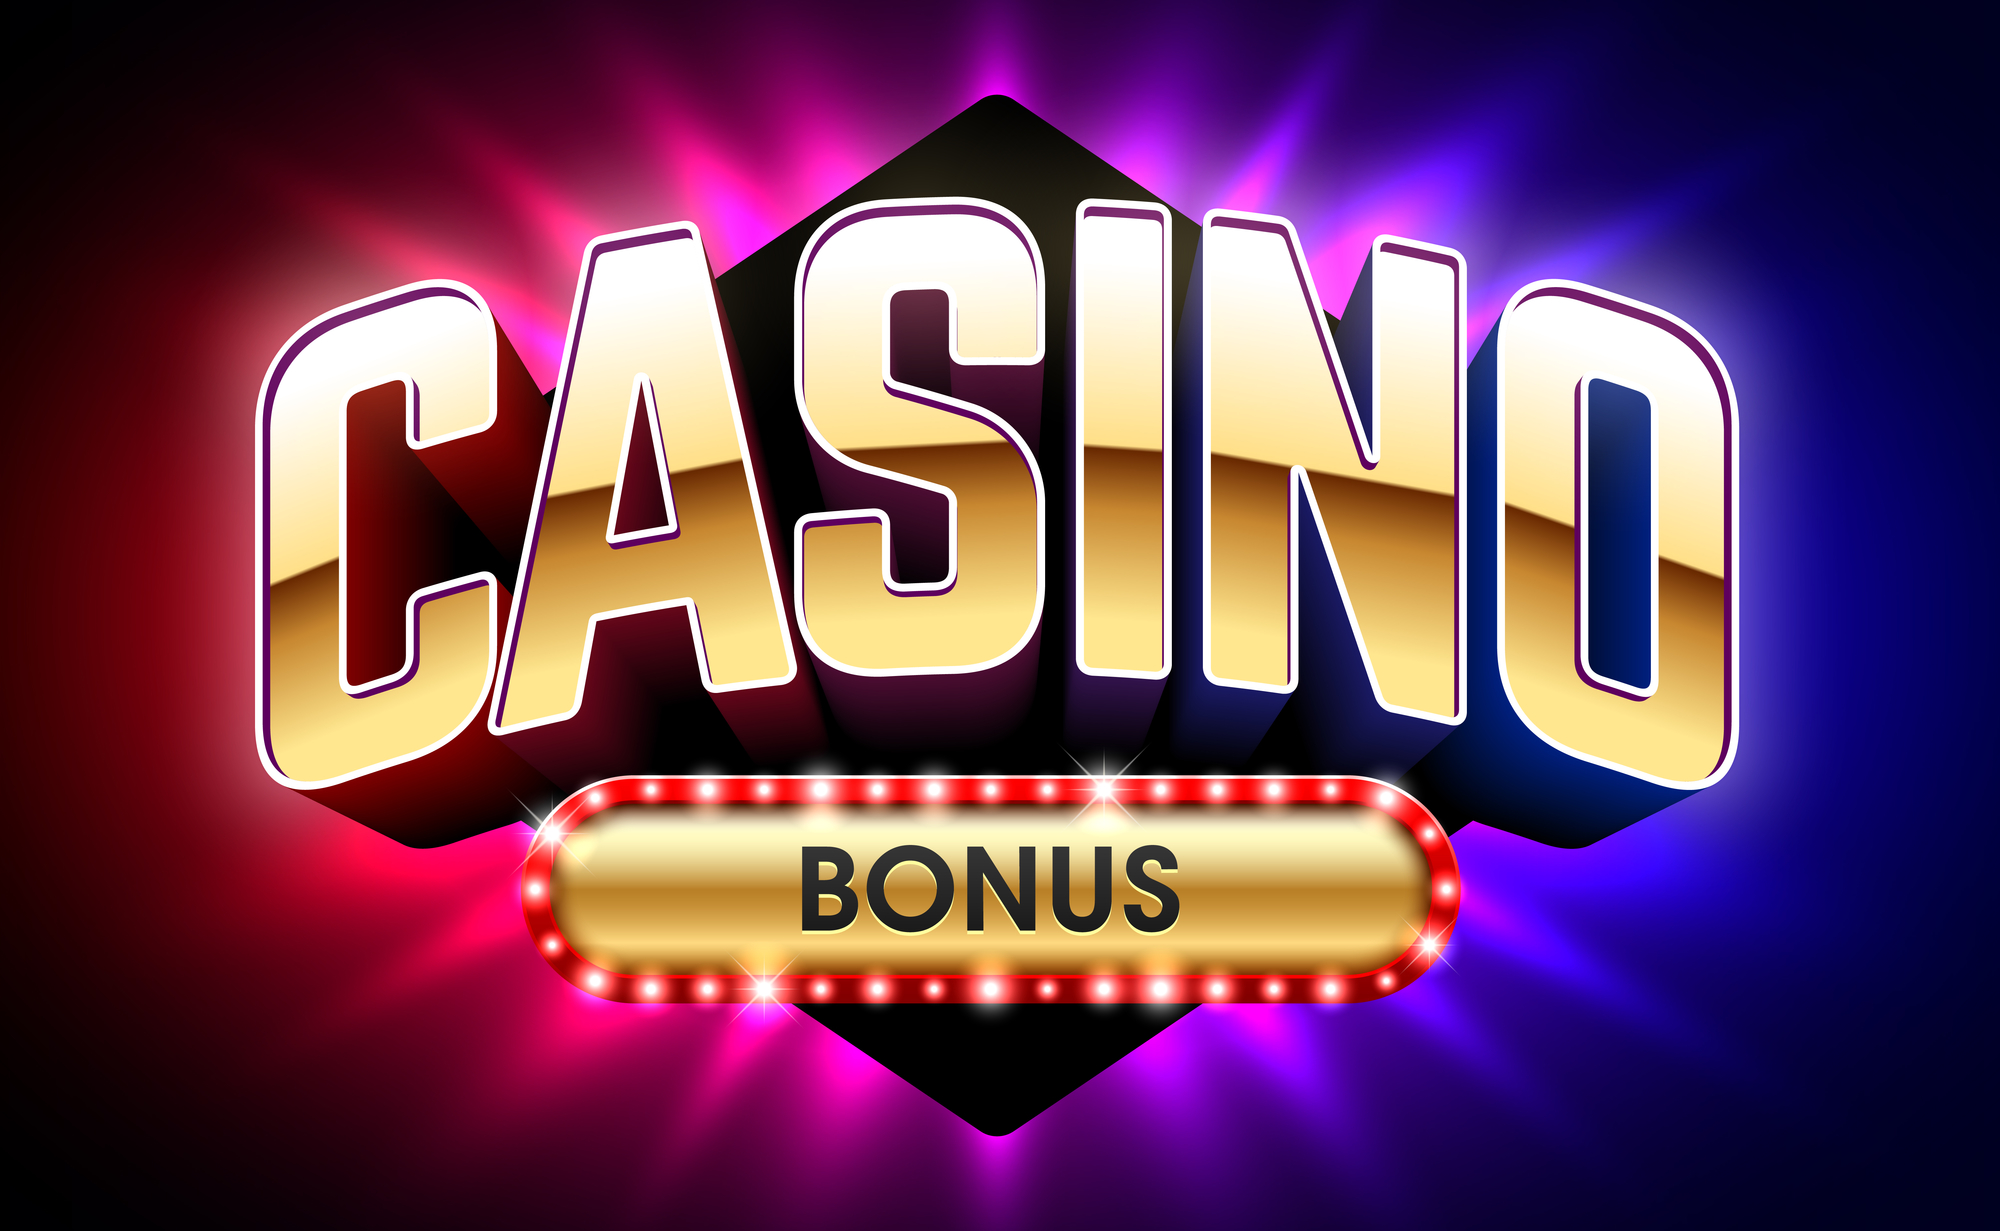 Up To £500 Casino Bonus at the New CasinoNation